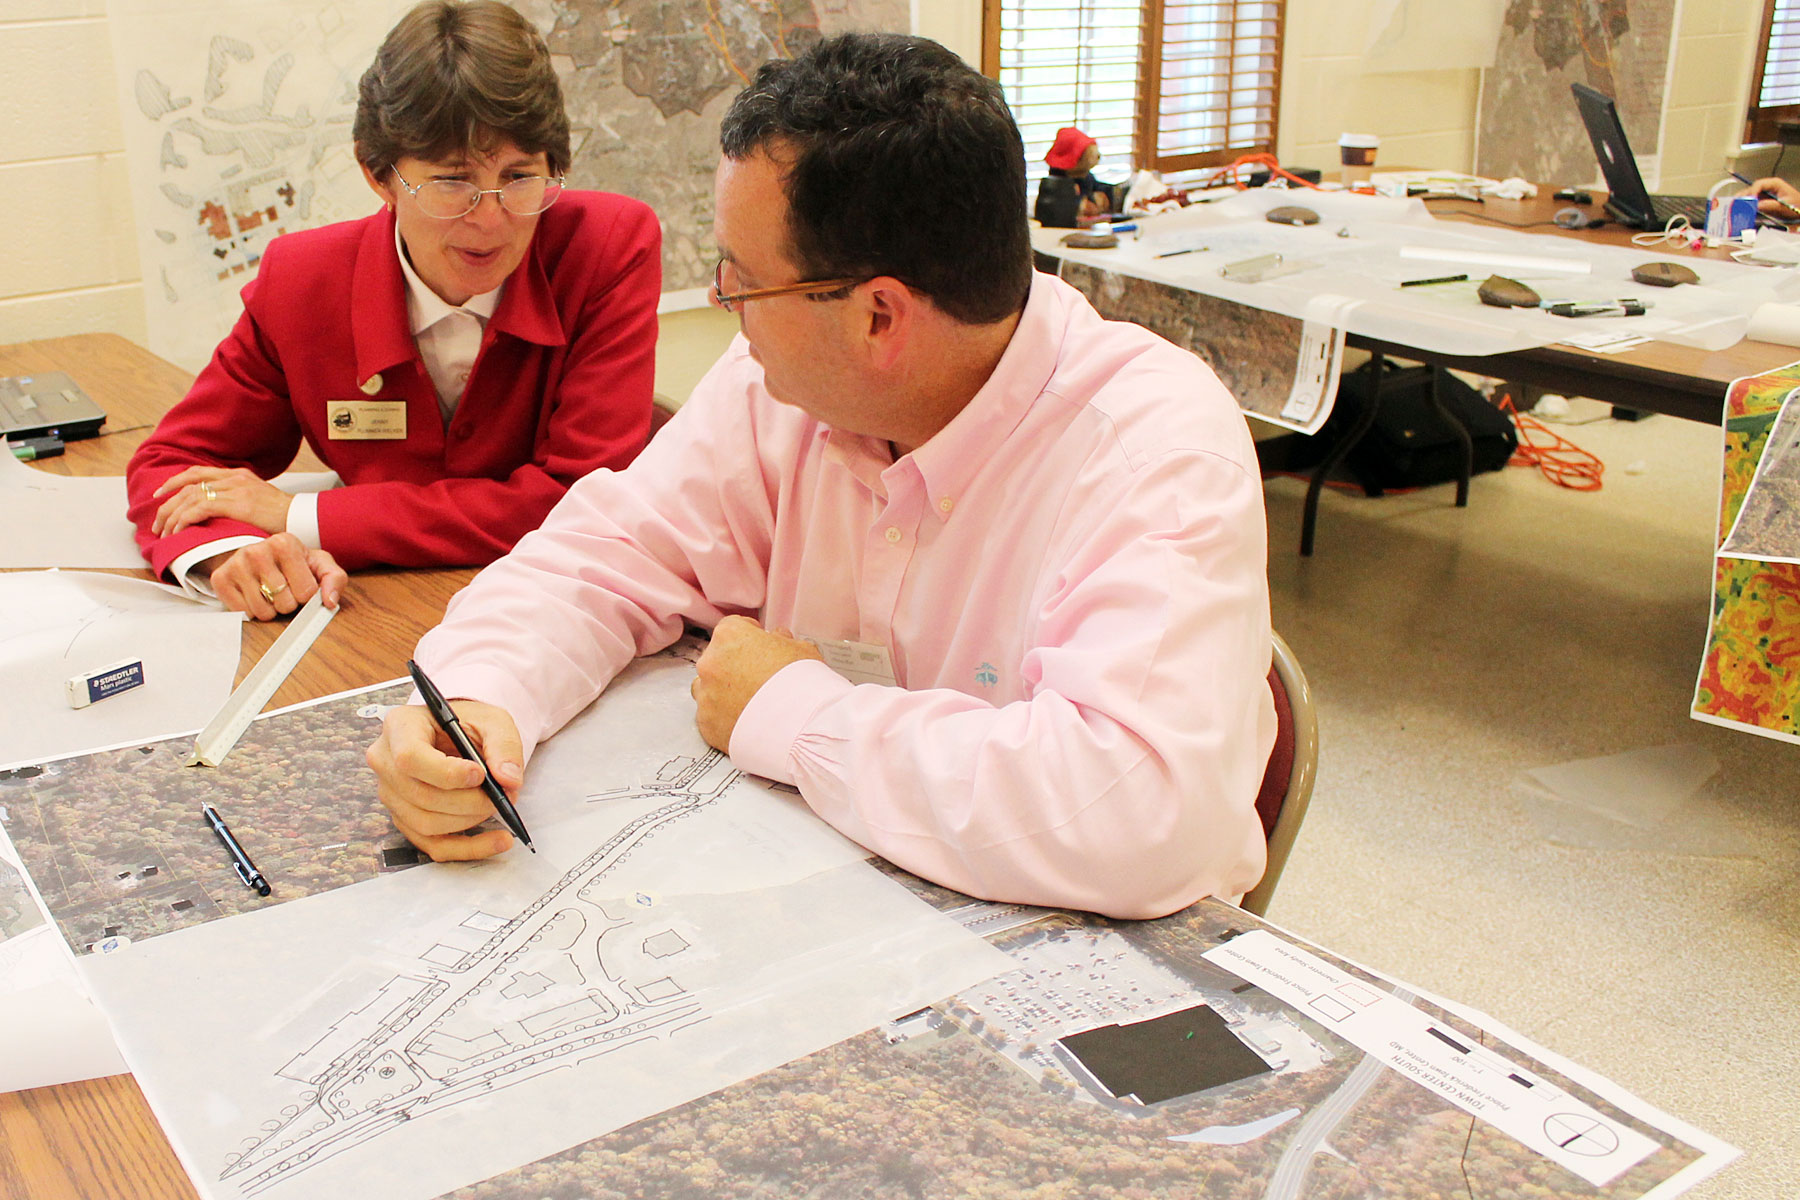 Jenny Plummer-Welker of Calvert County Community Planning and Building goes over maps and data with Wade Walker from the Lawrence Group during the charrette